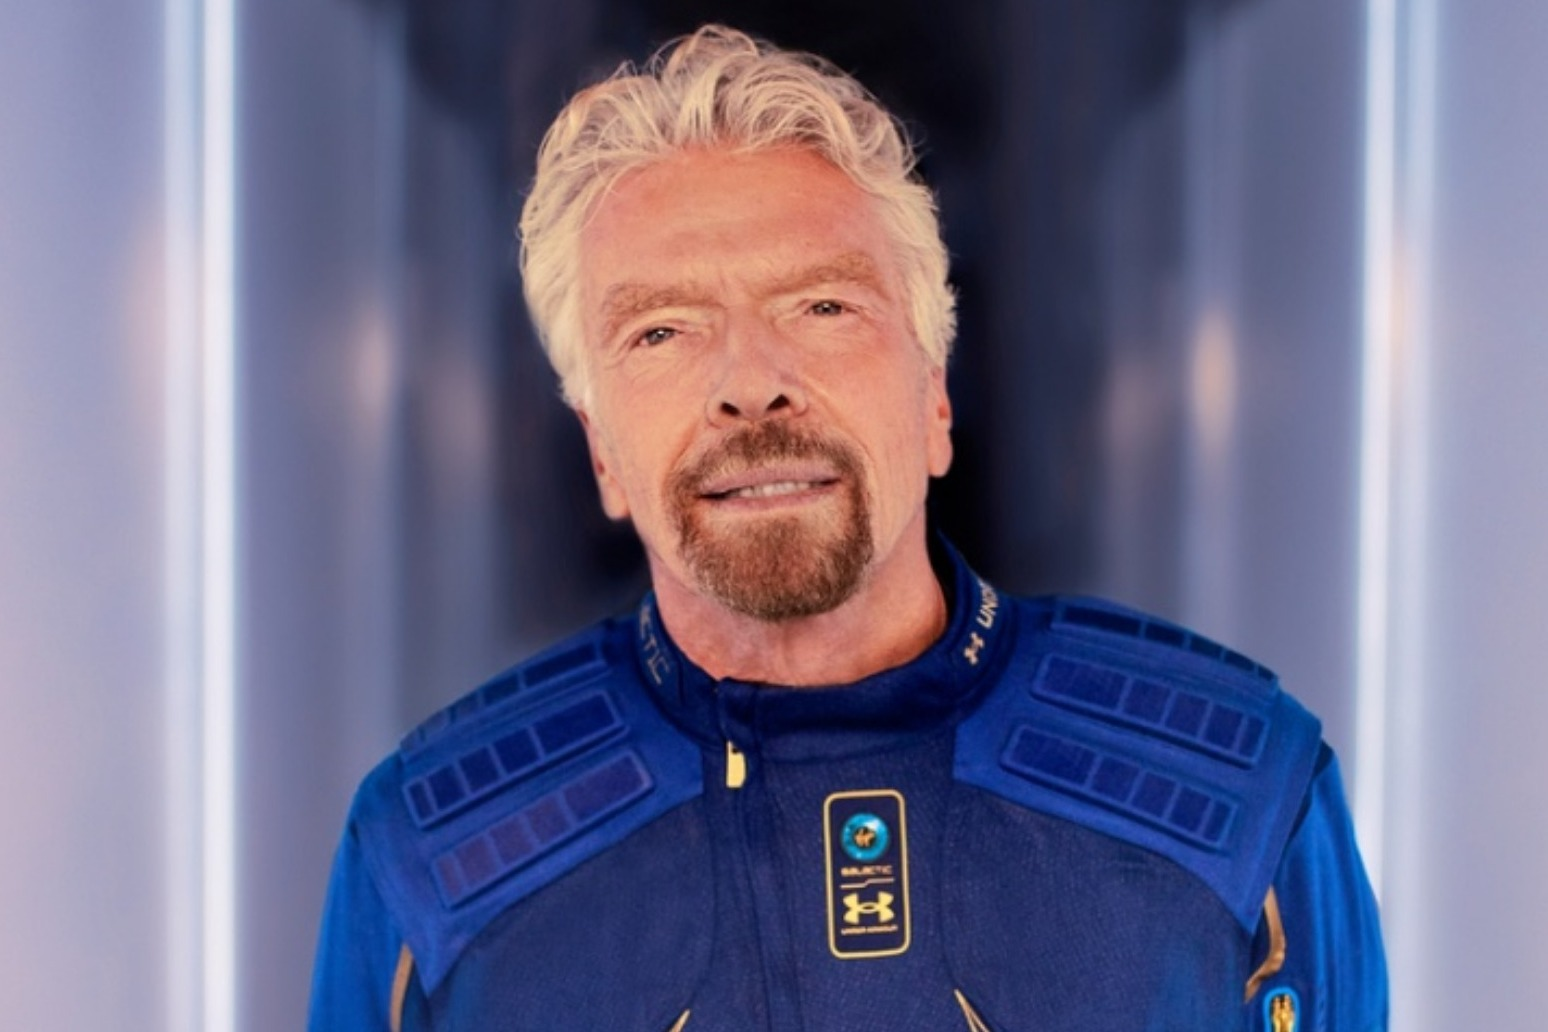 Sir Richard Branson set for first space flight with Virgin Galactic